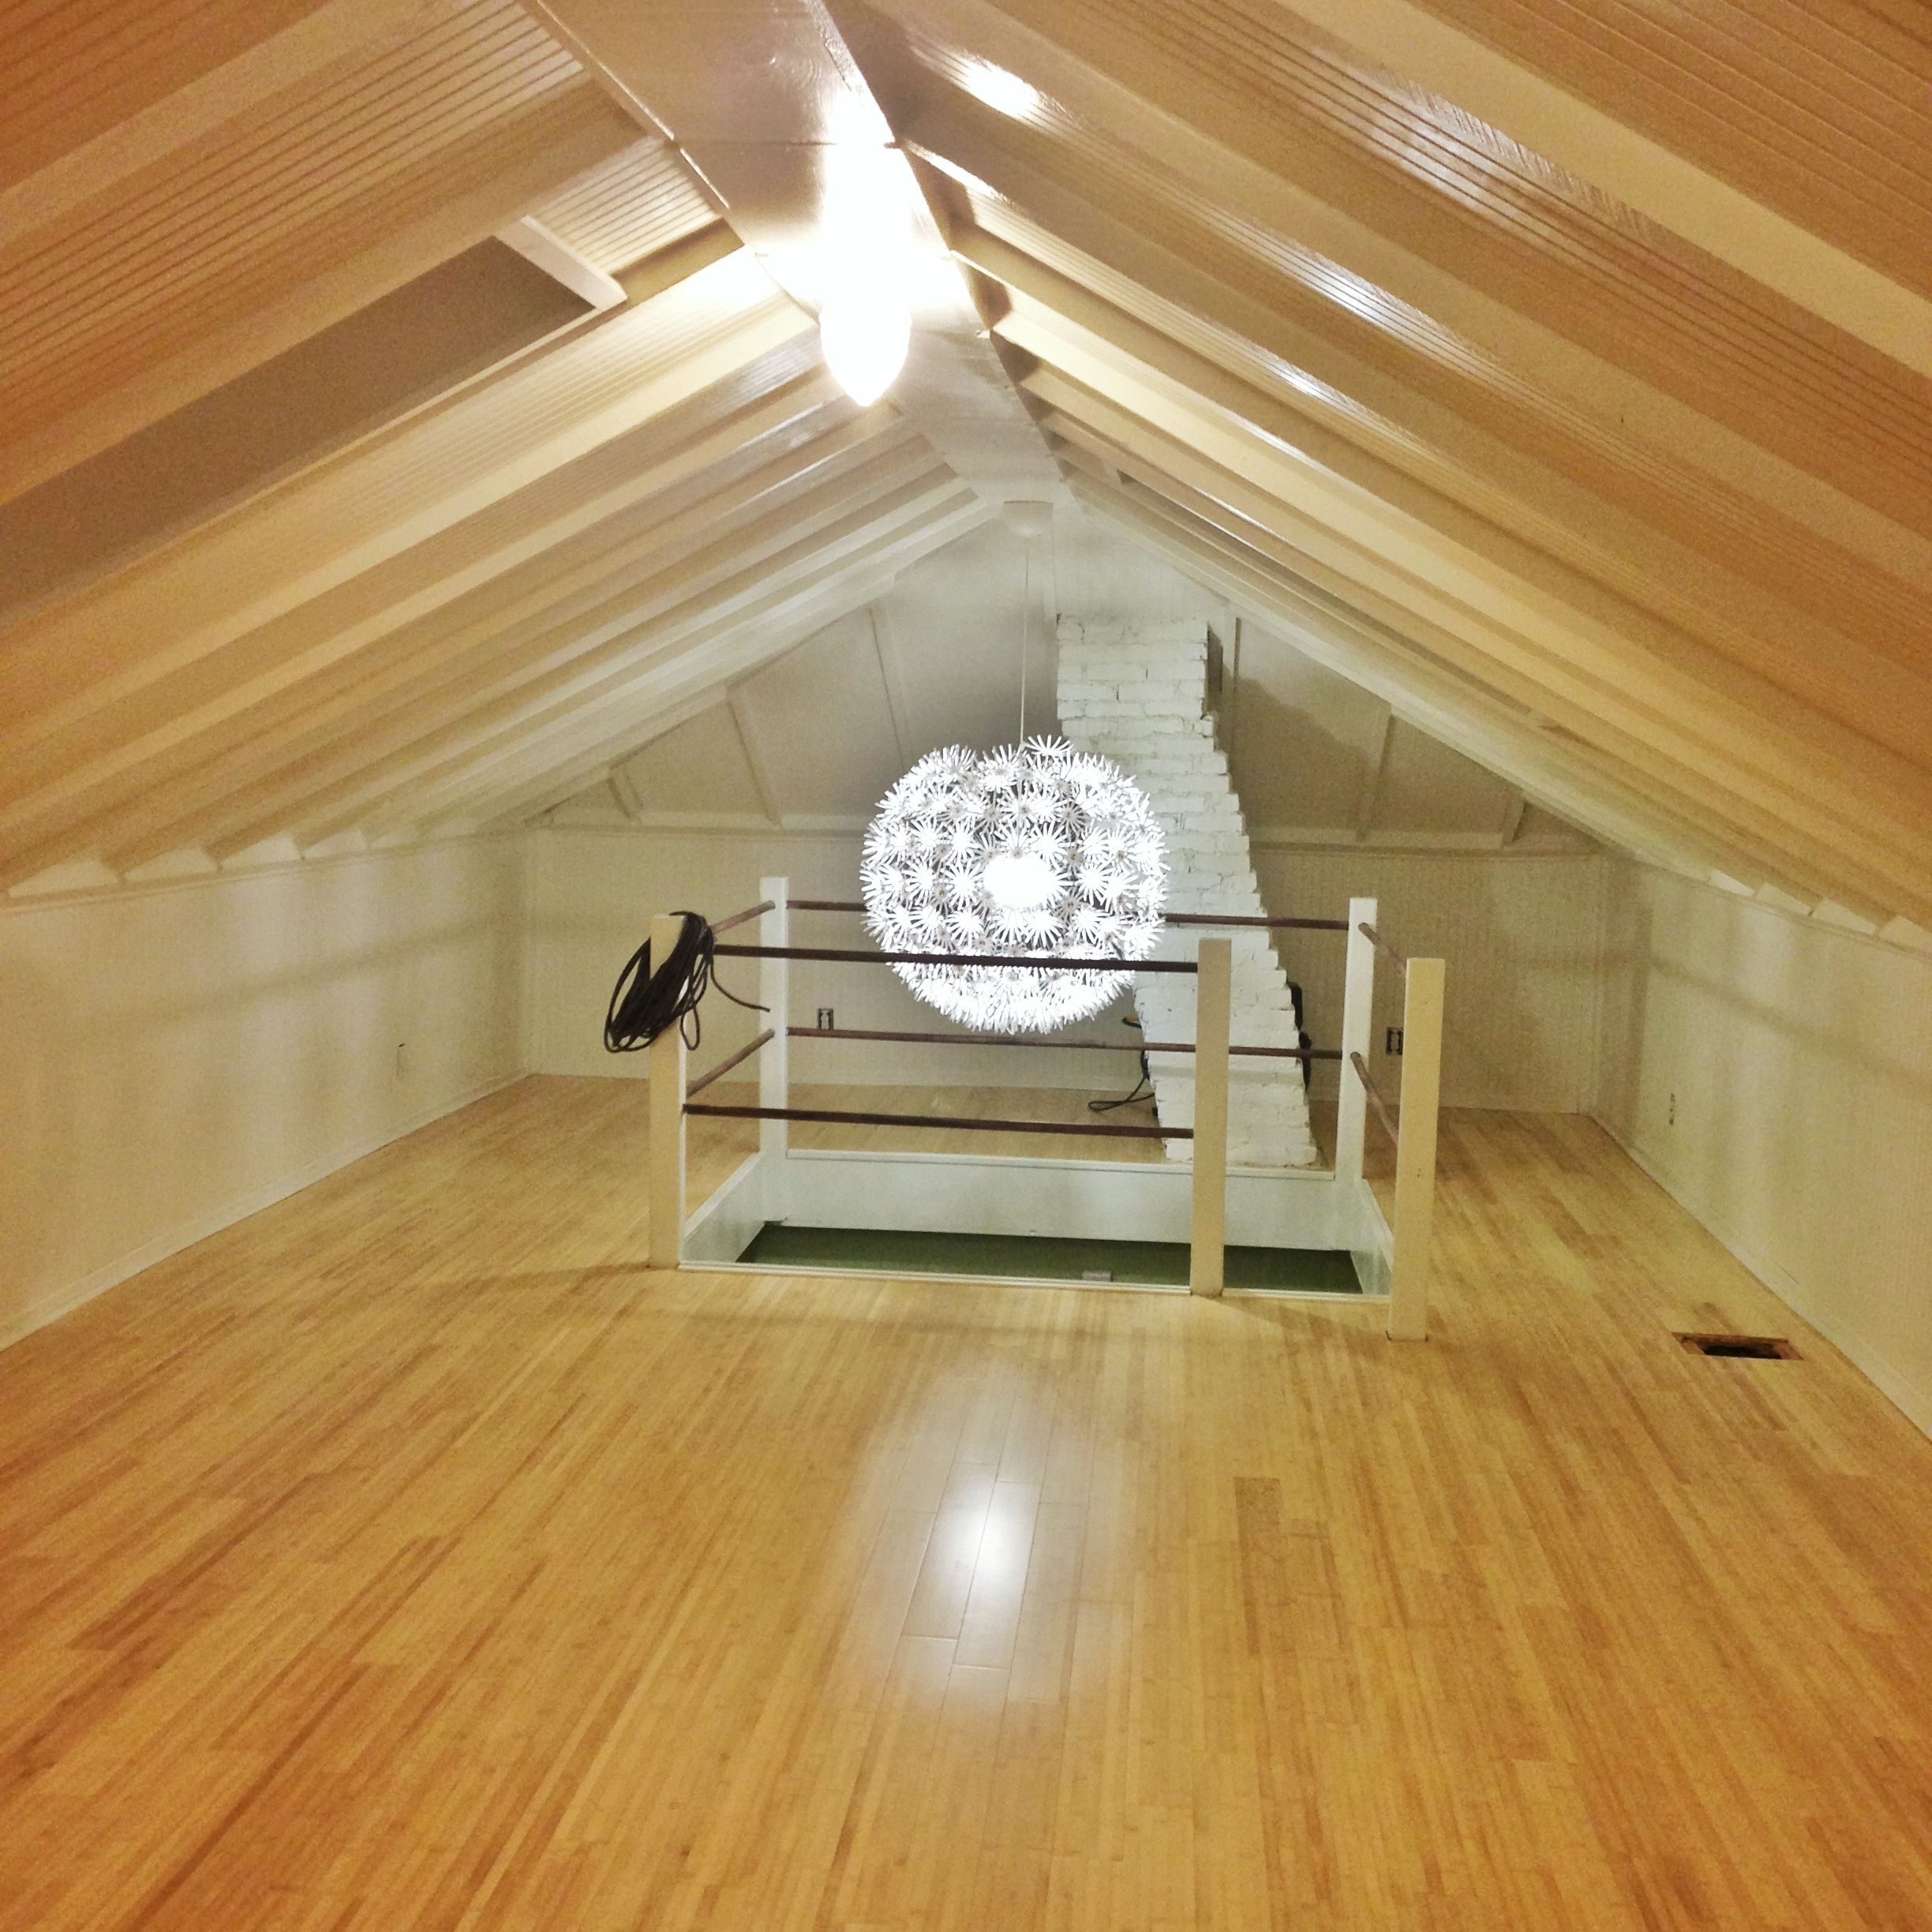 Attic Room, Diy, It Took Us About 13 Months Added